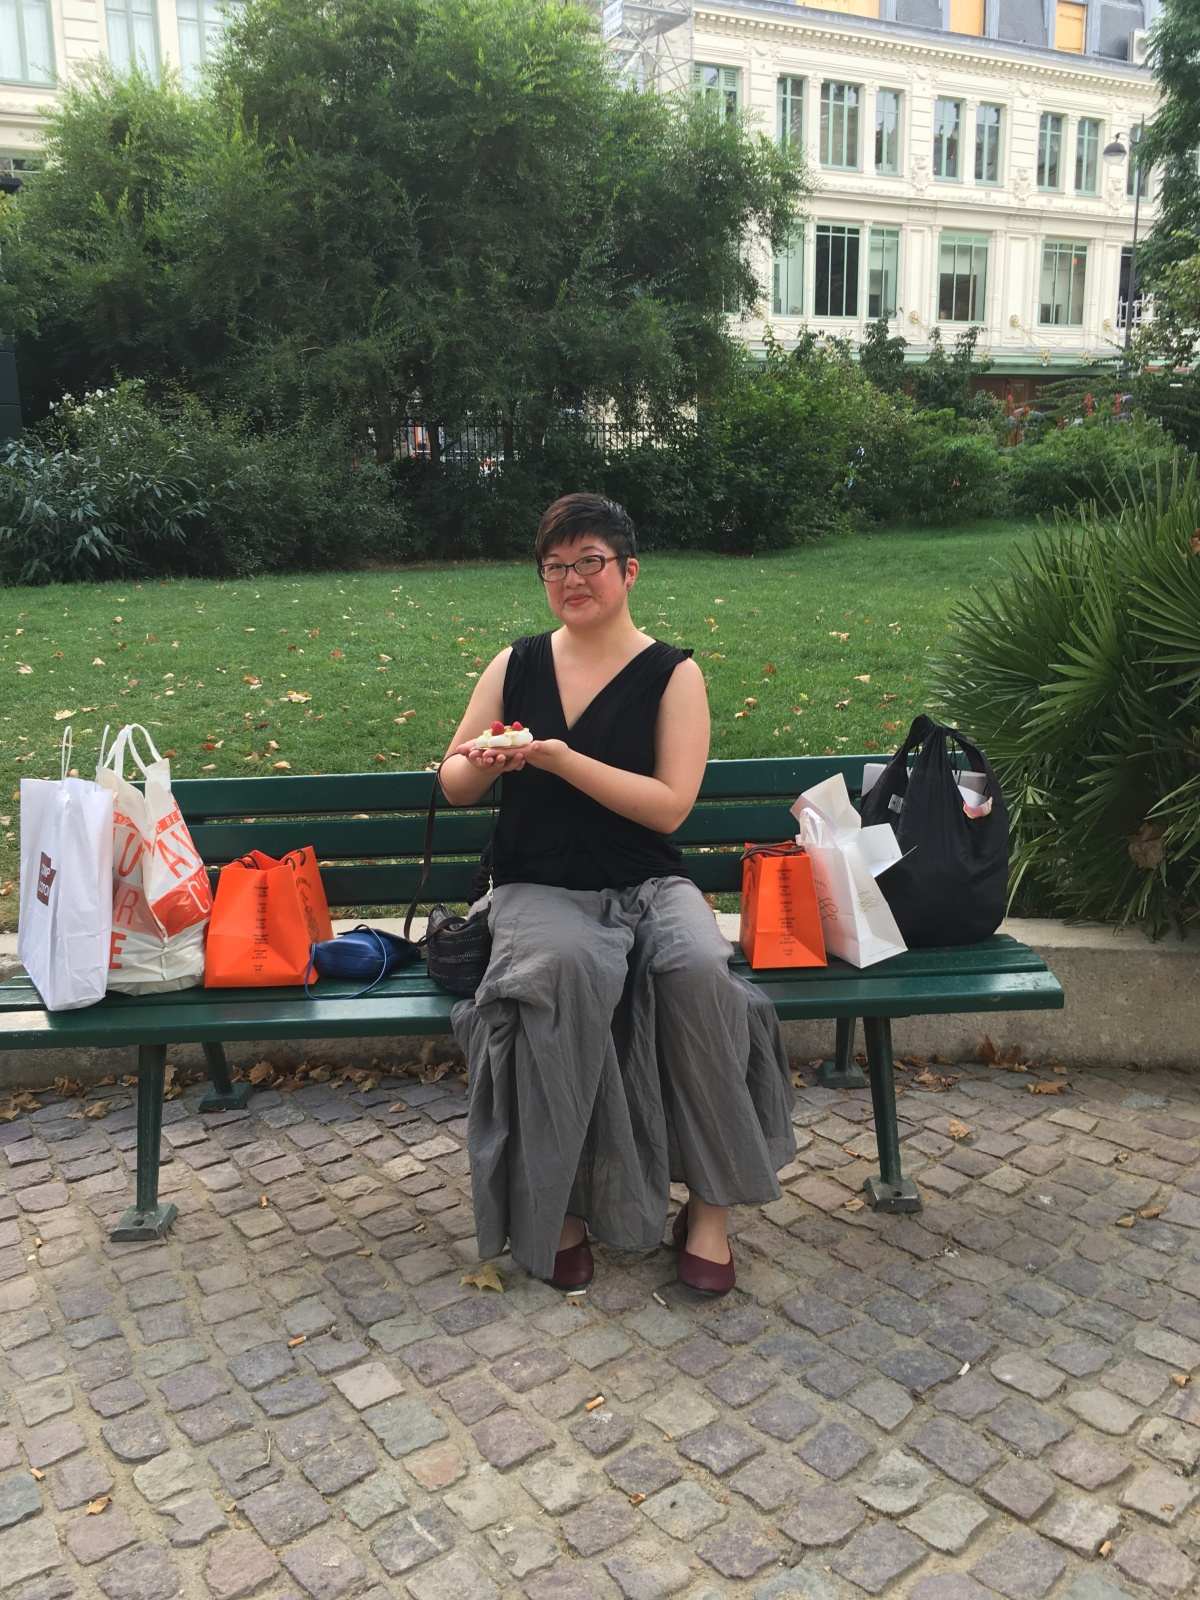 Lisa on a park bench surrounded by shopping bags